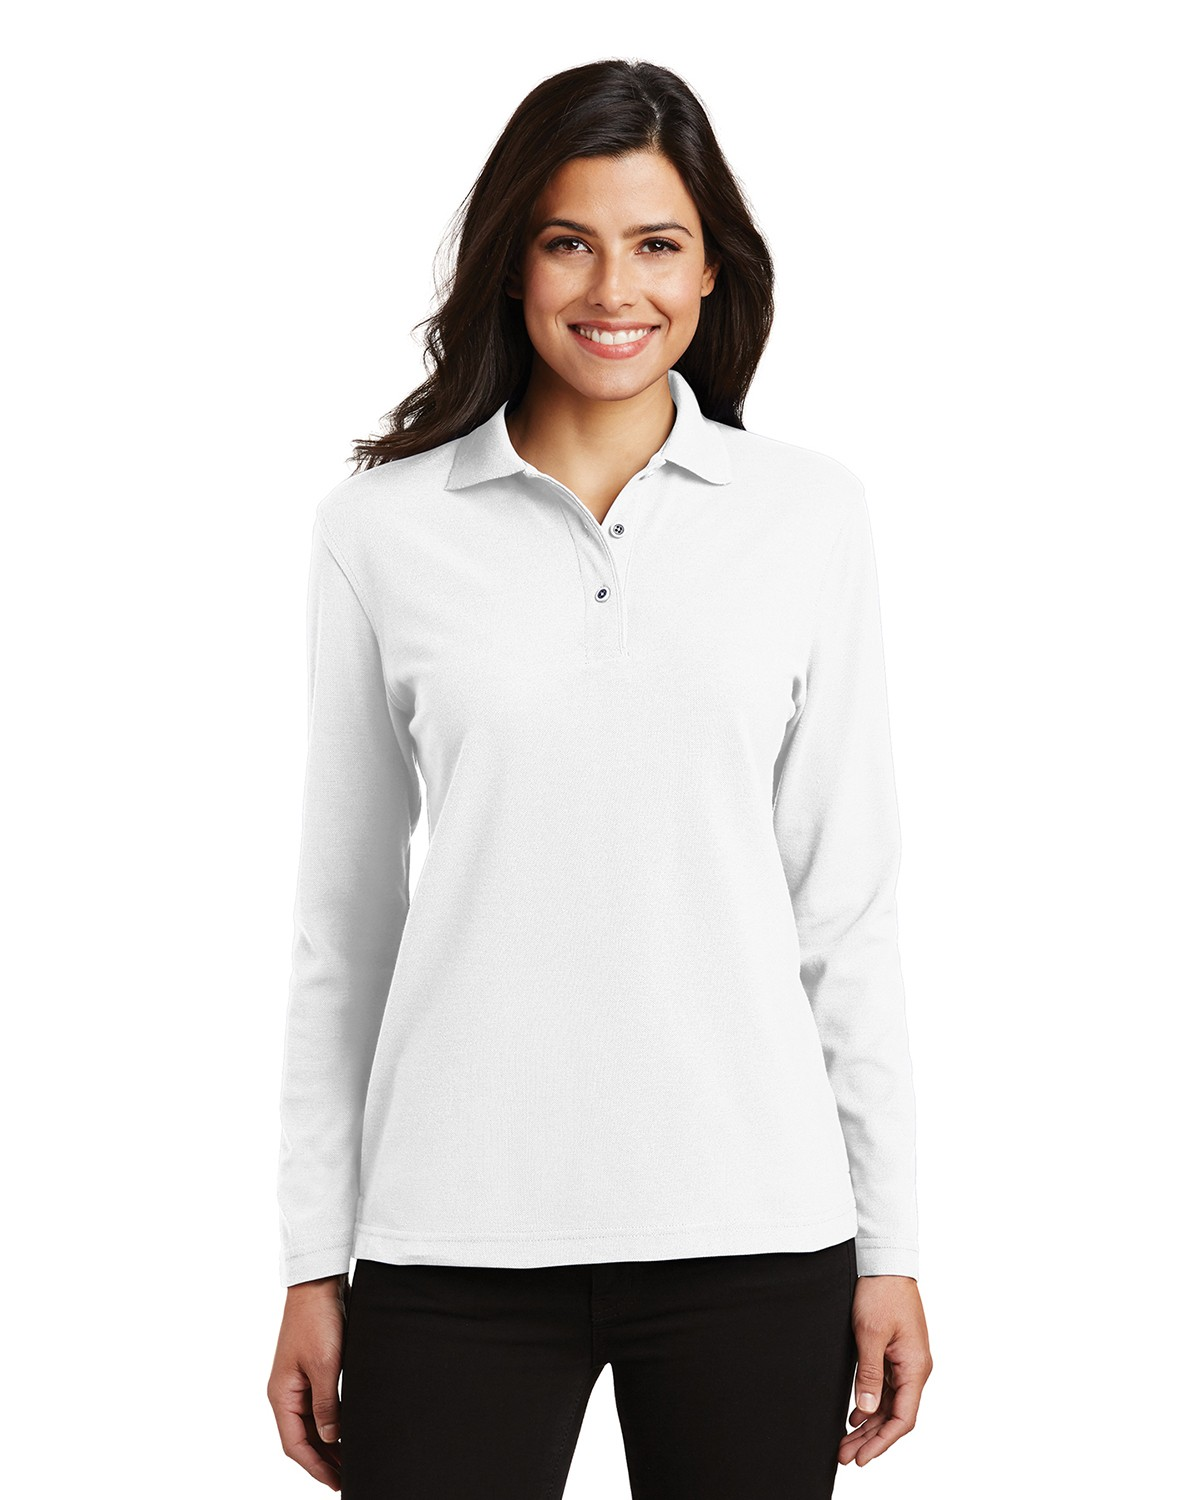 Port Authority L500LS Women's Silk Touch Polo - White - XS #silk